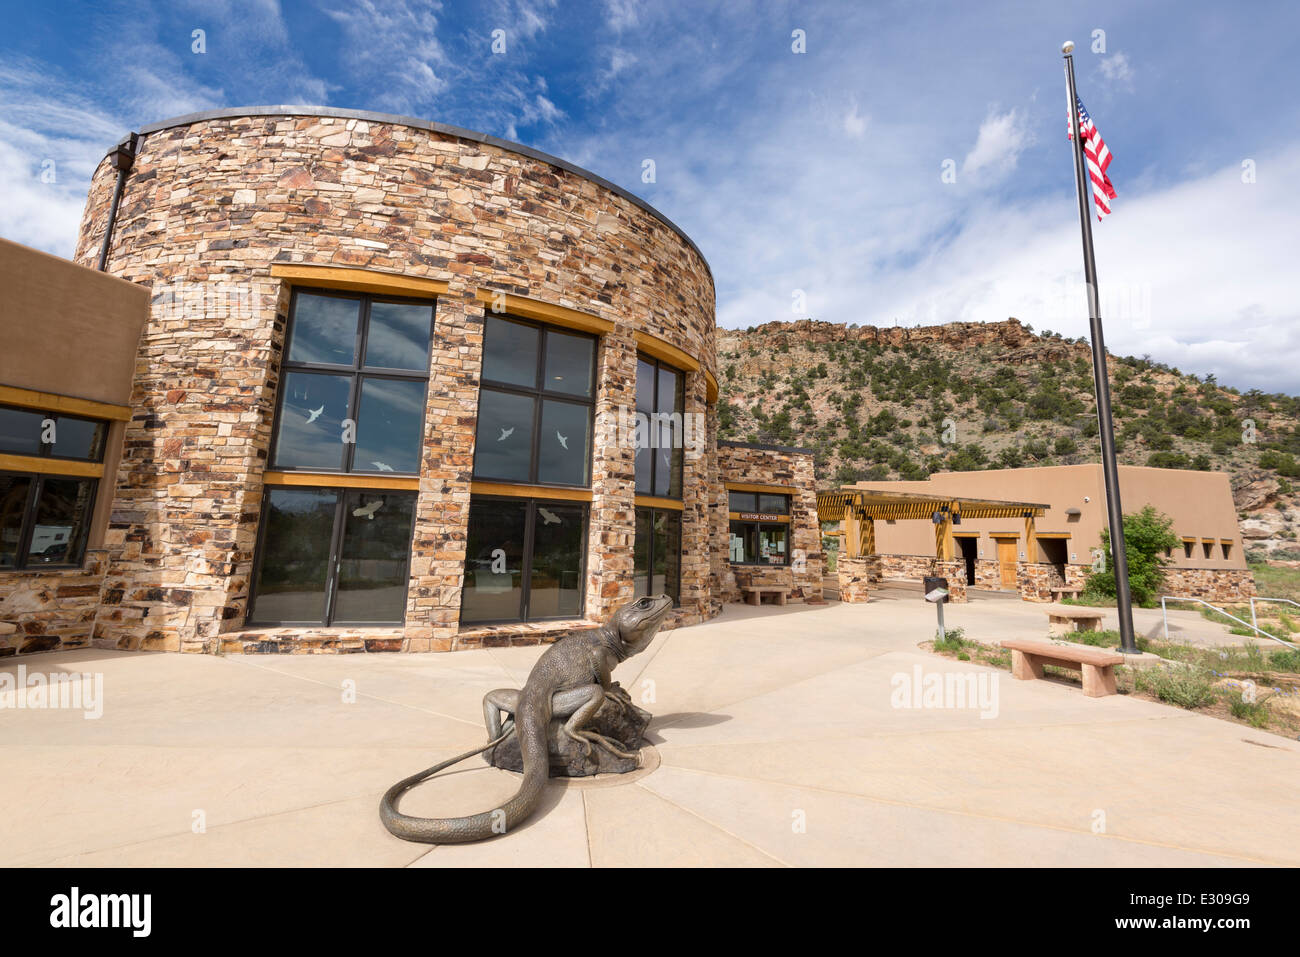 Great Basin Collared Lizard sculpture in front of the Escalante Interagency Vistiors Center in Escalante, Utah. Stock Photo